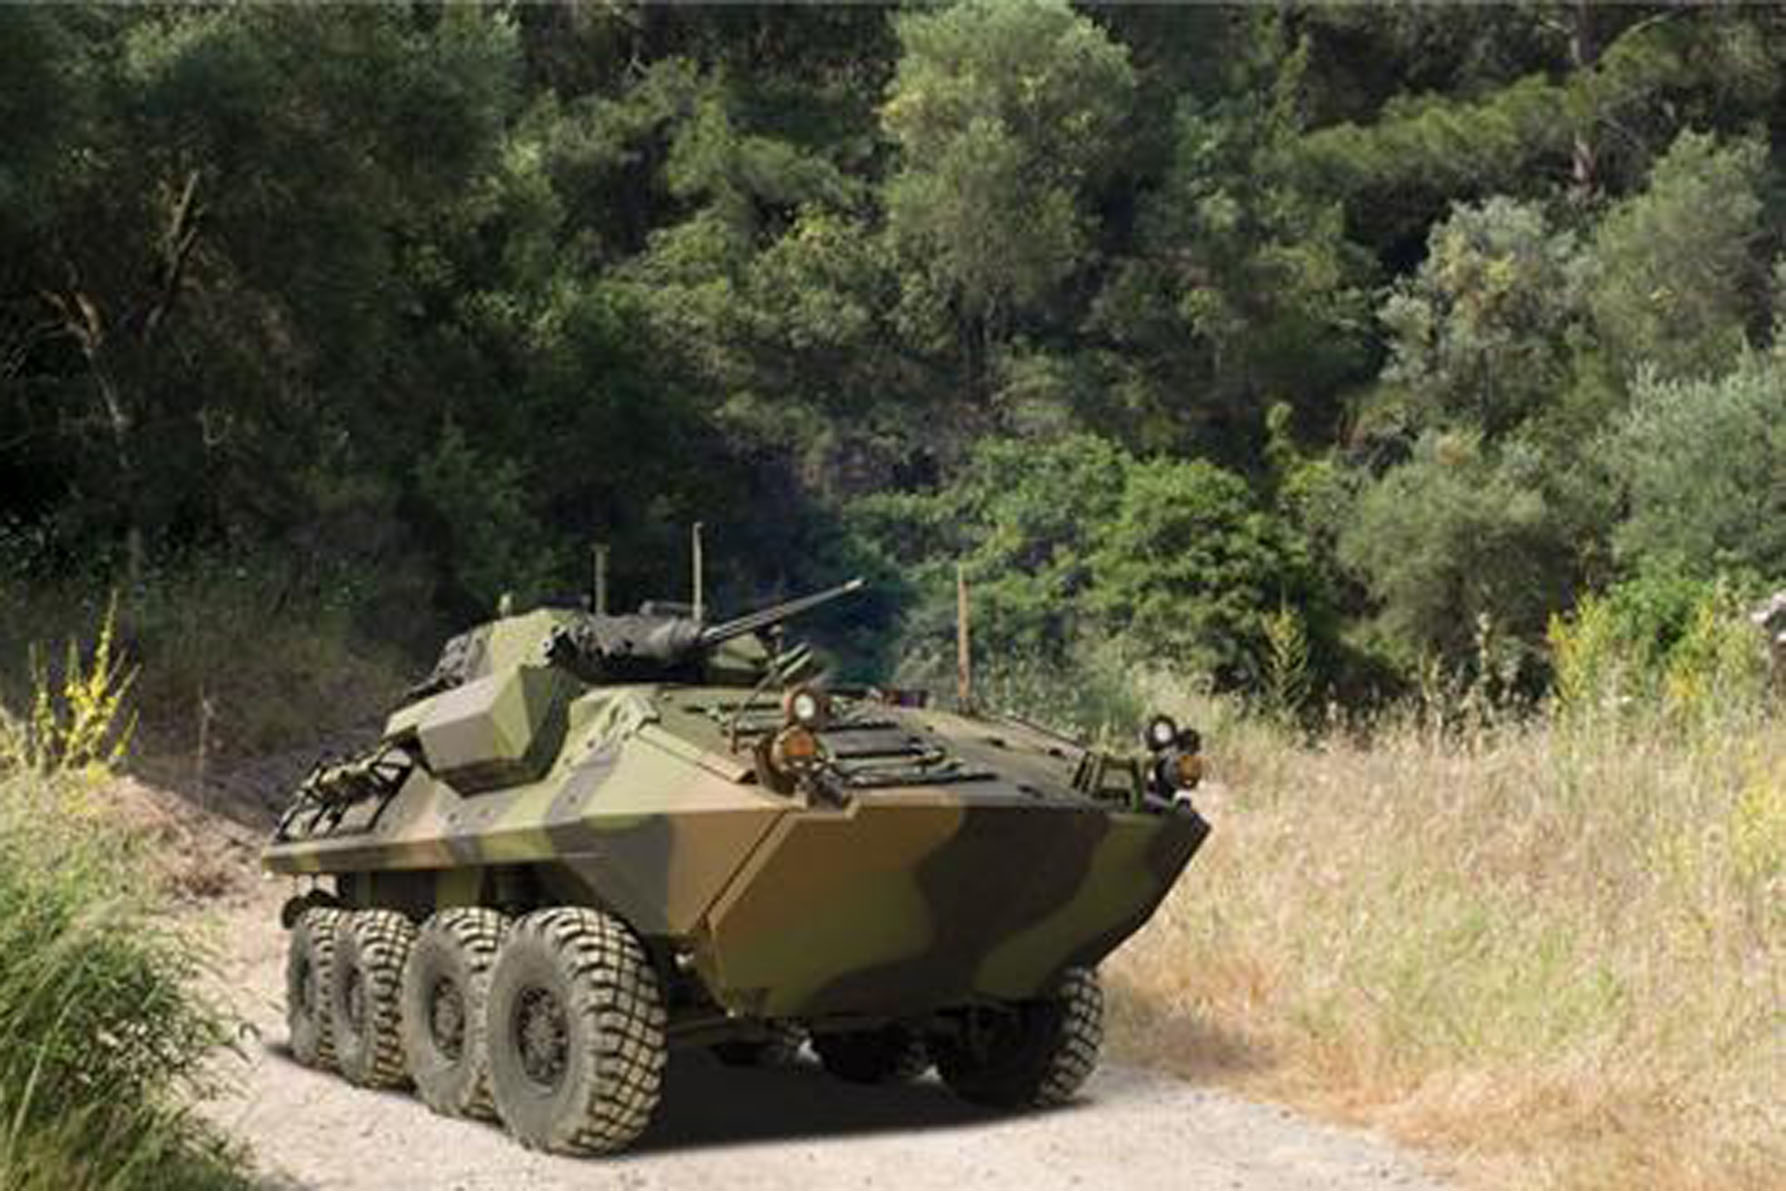 General Dynamics wins LAV contract